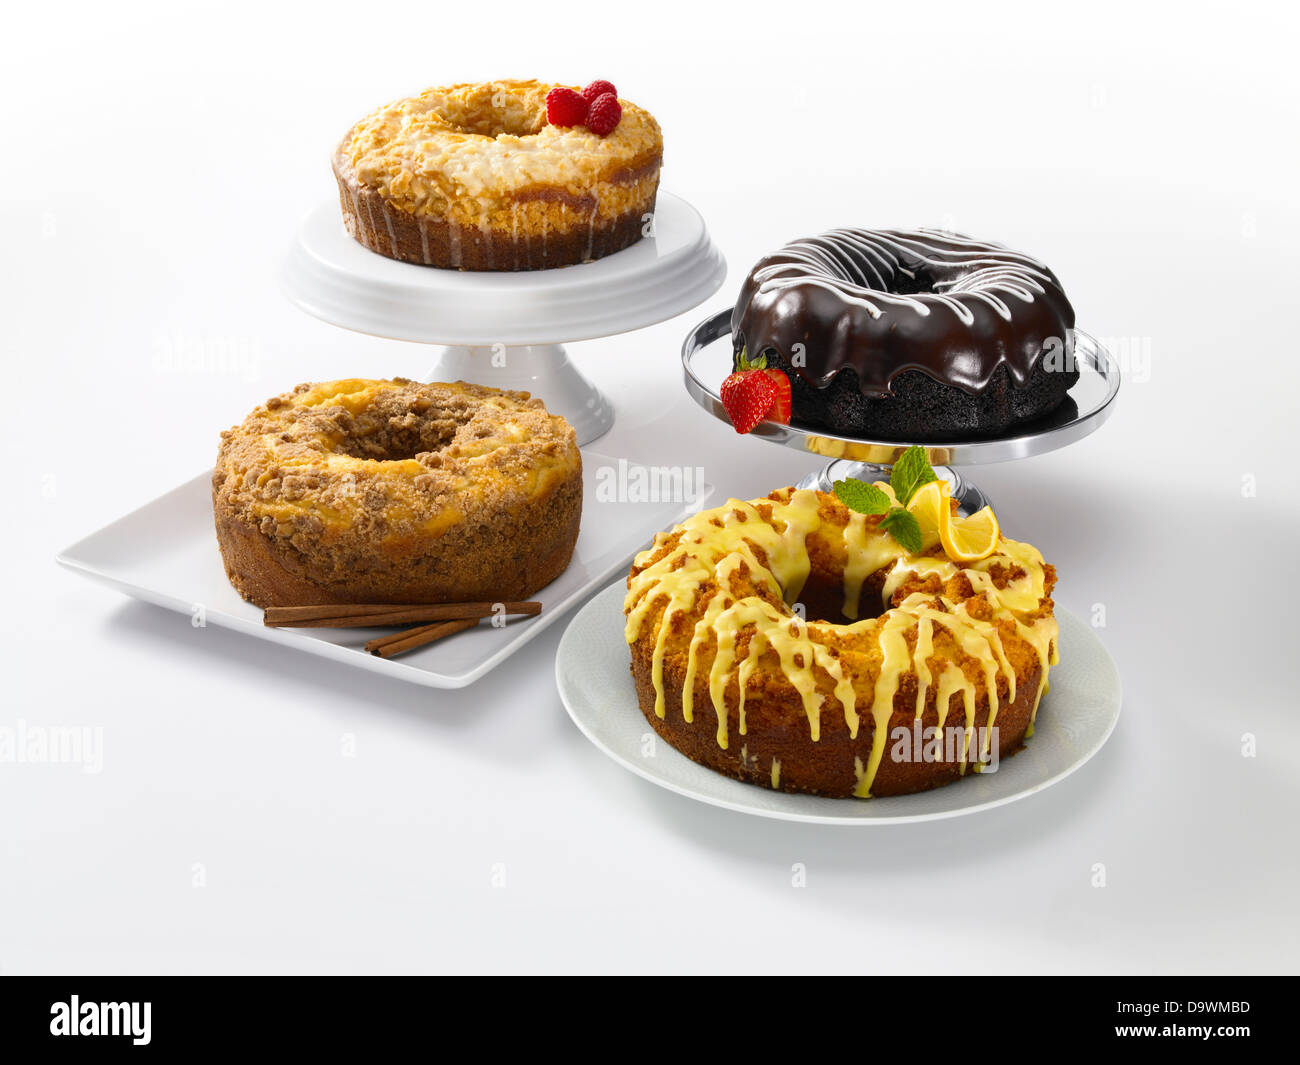 Classic cakes - Stock Image